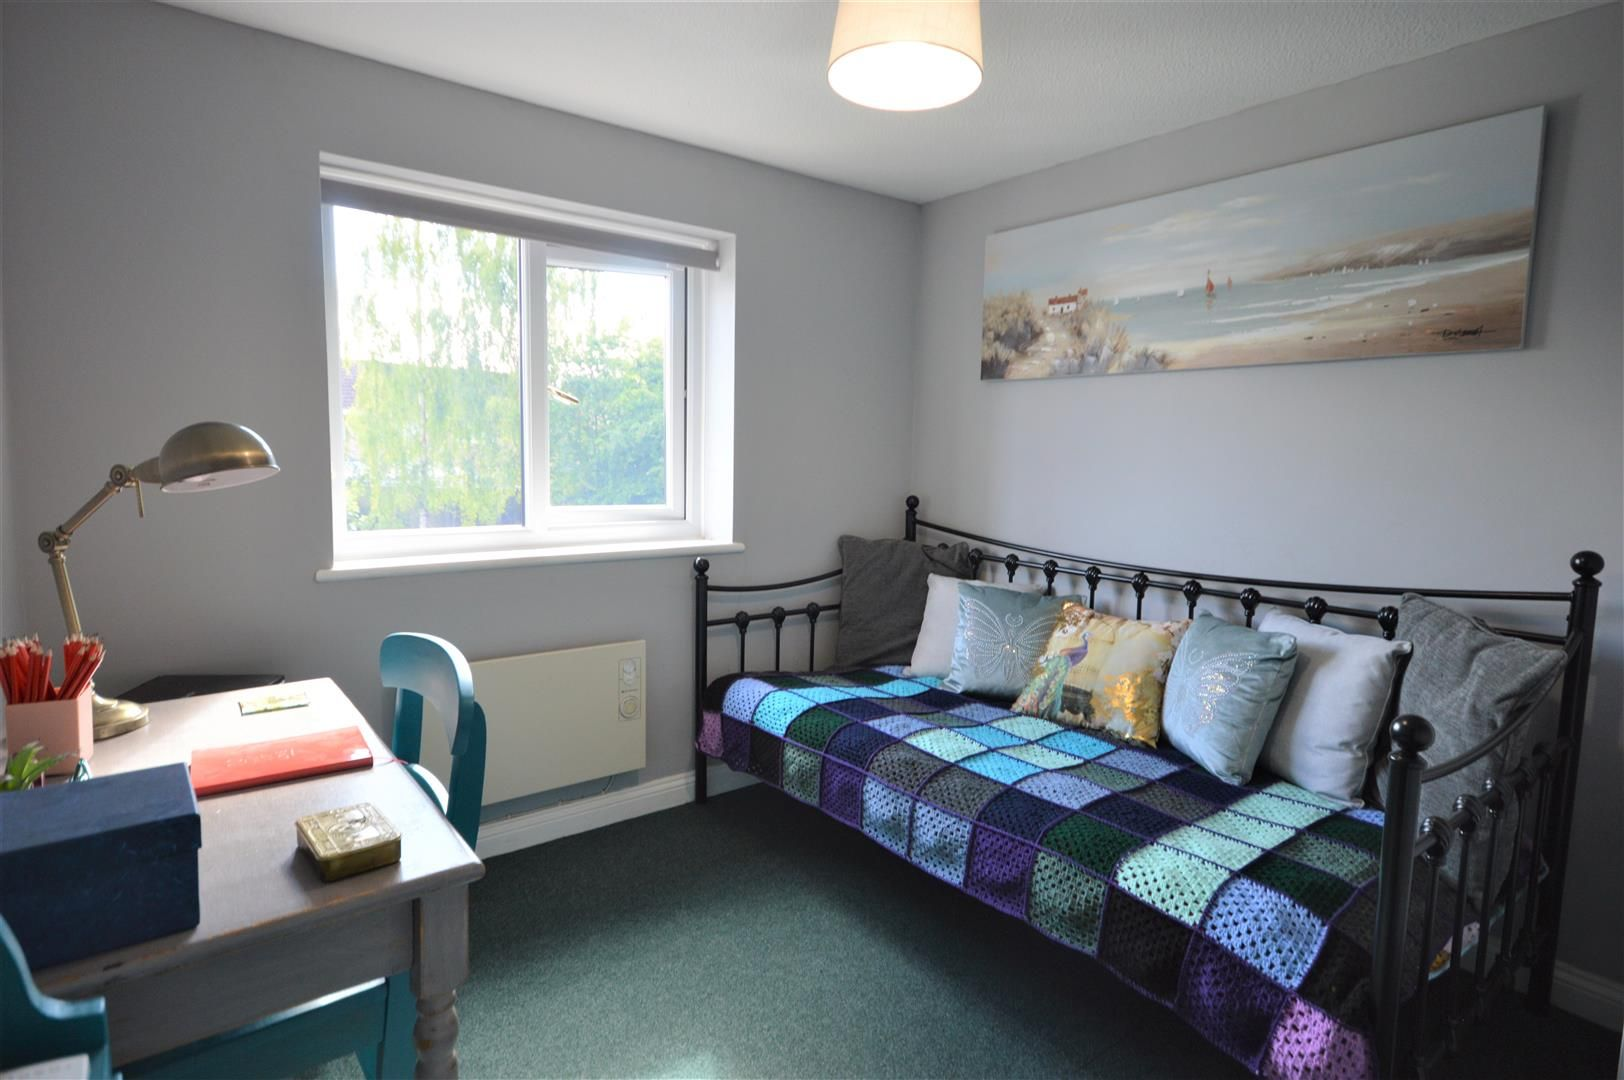 2 bed end-of-terrace for sale in Leominster 4